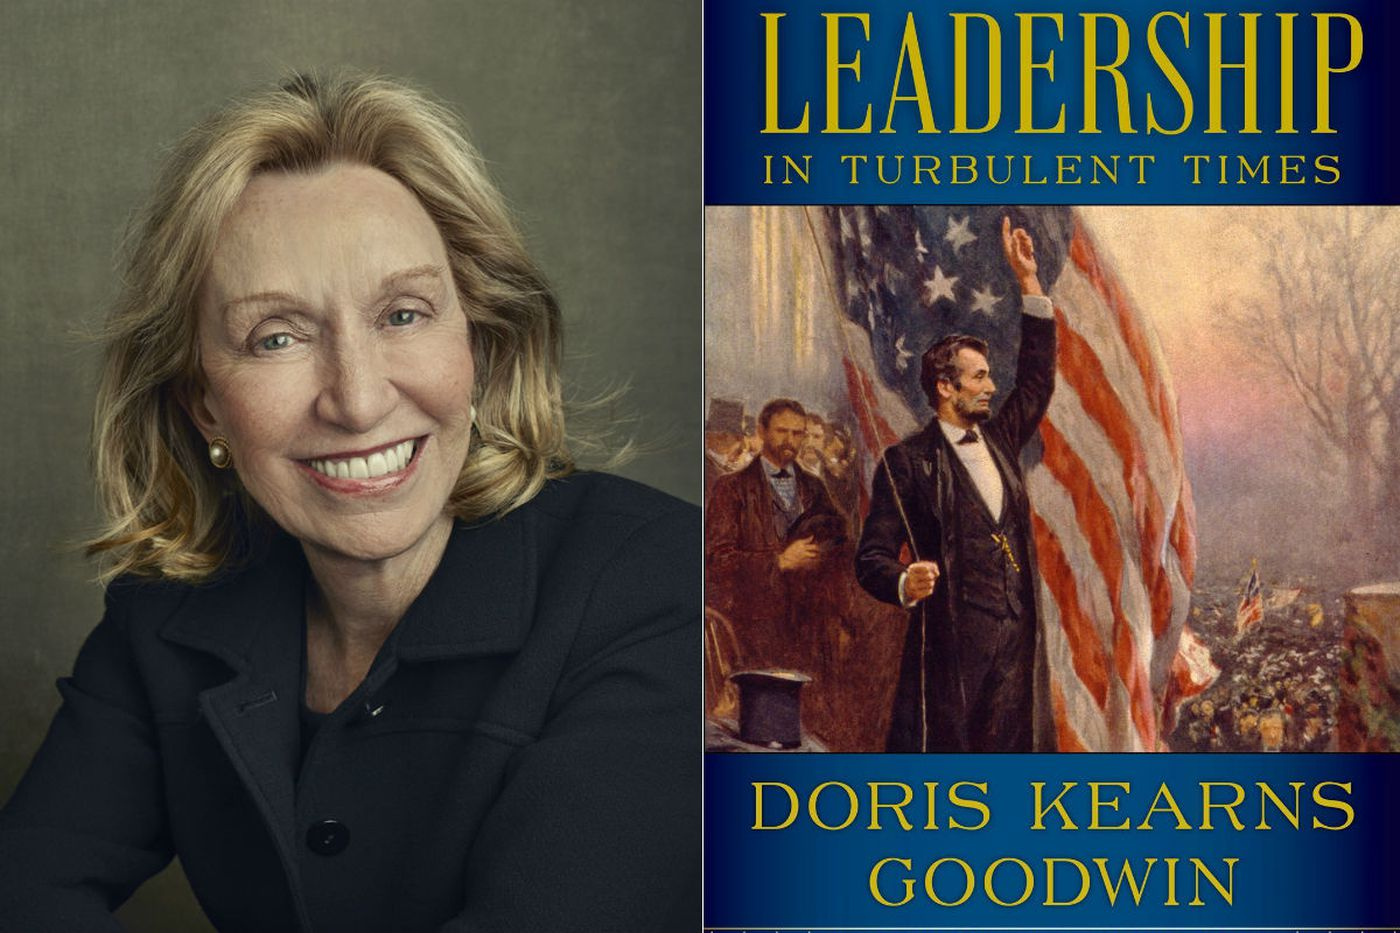 In a turbulent time, Doris Kearns Goodwin talks about 'Leadership in Turbulent Times'